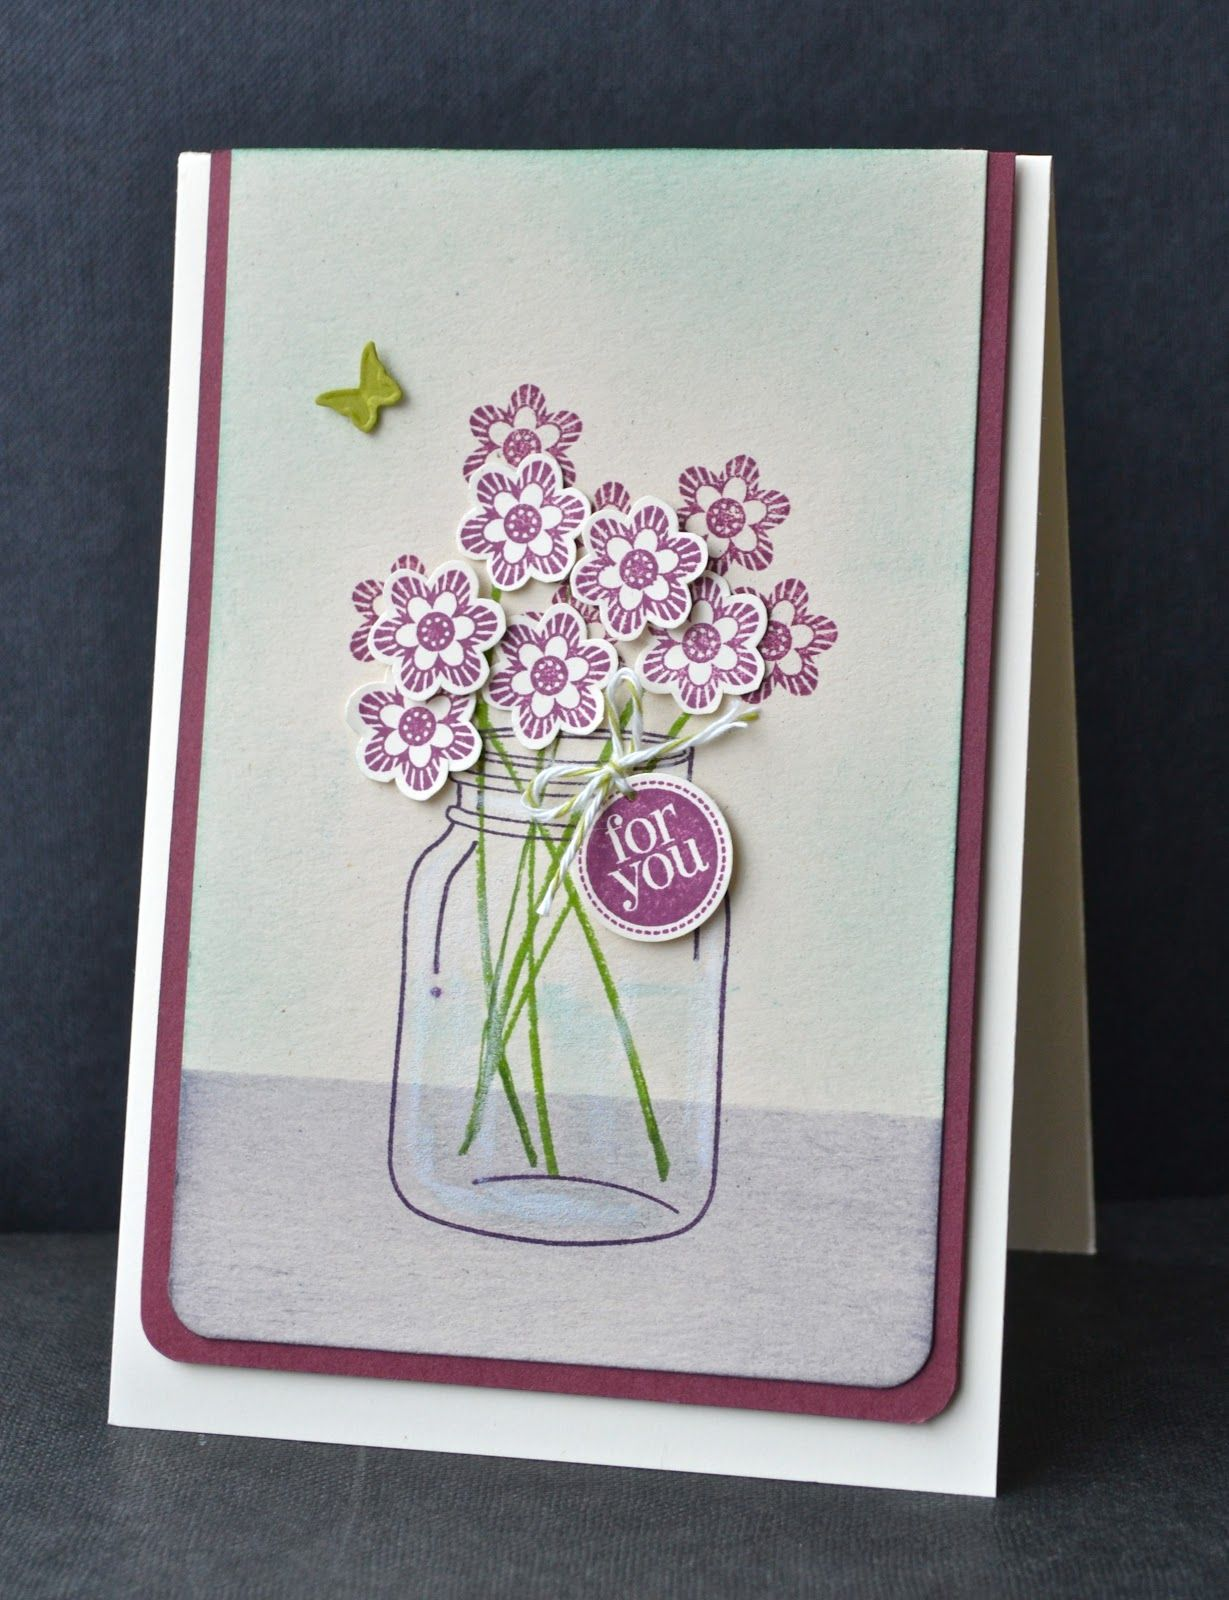 Awesome Card Making Ideas Stampin Up Part - 13: Cardmaking · Stampinu0027 Up Ideas And Supplies From Vicky At Crafting Clareu0027s  Paper Moments: Perfectly Preserved